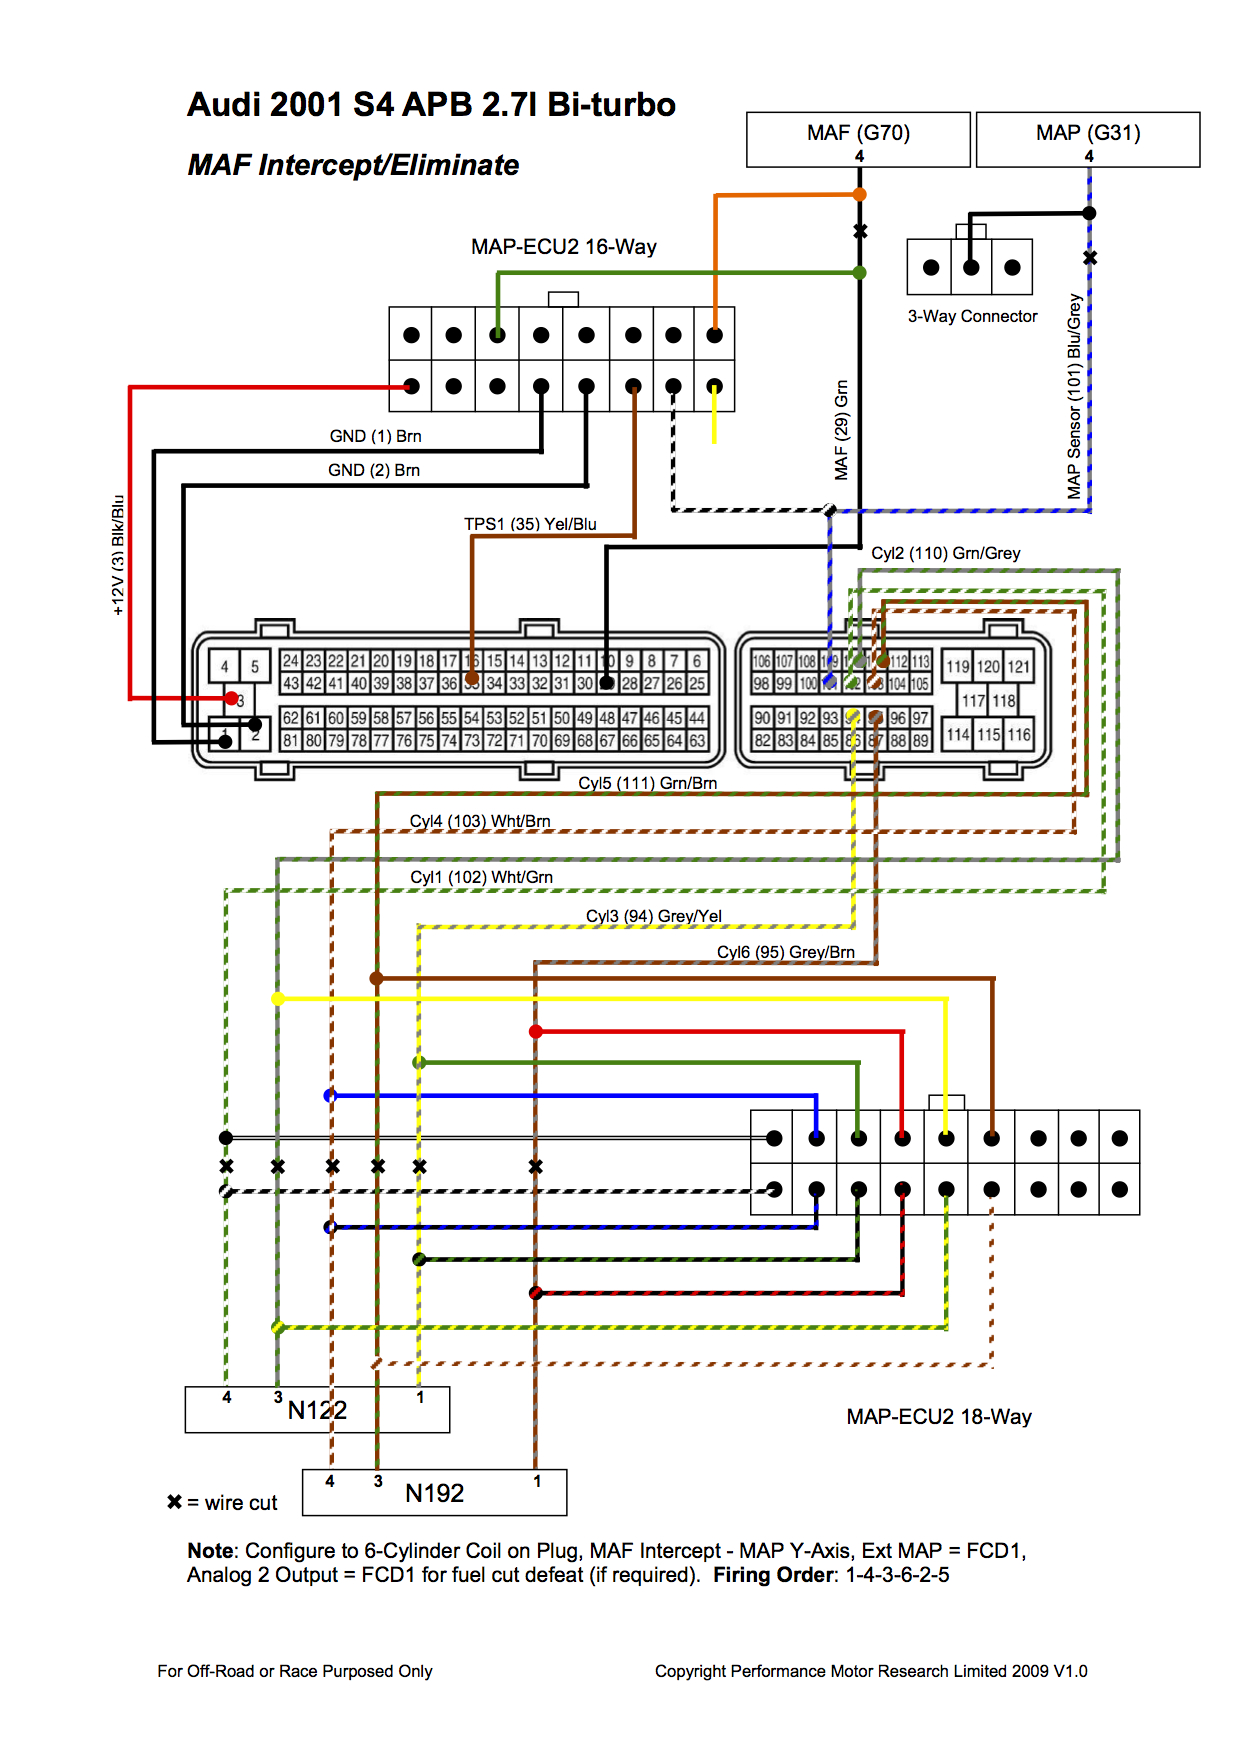 Audi S4 20011 300zx wiring diagram 300zx engine wiring diagram \u2022 wiring diagrams 2006 chrysler 300 stereo wiring diagram at virtualis.co